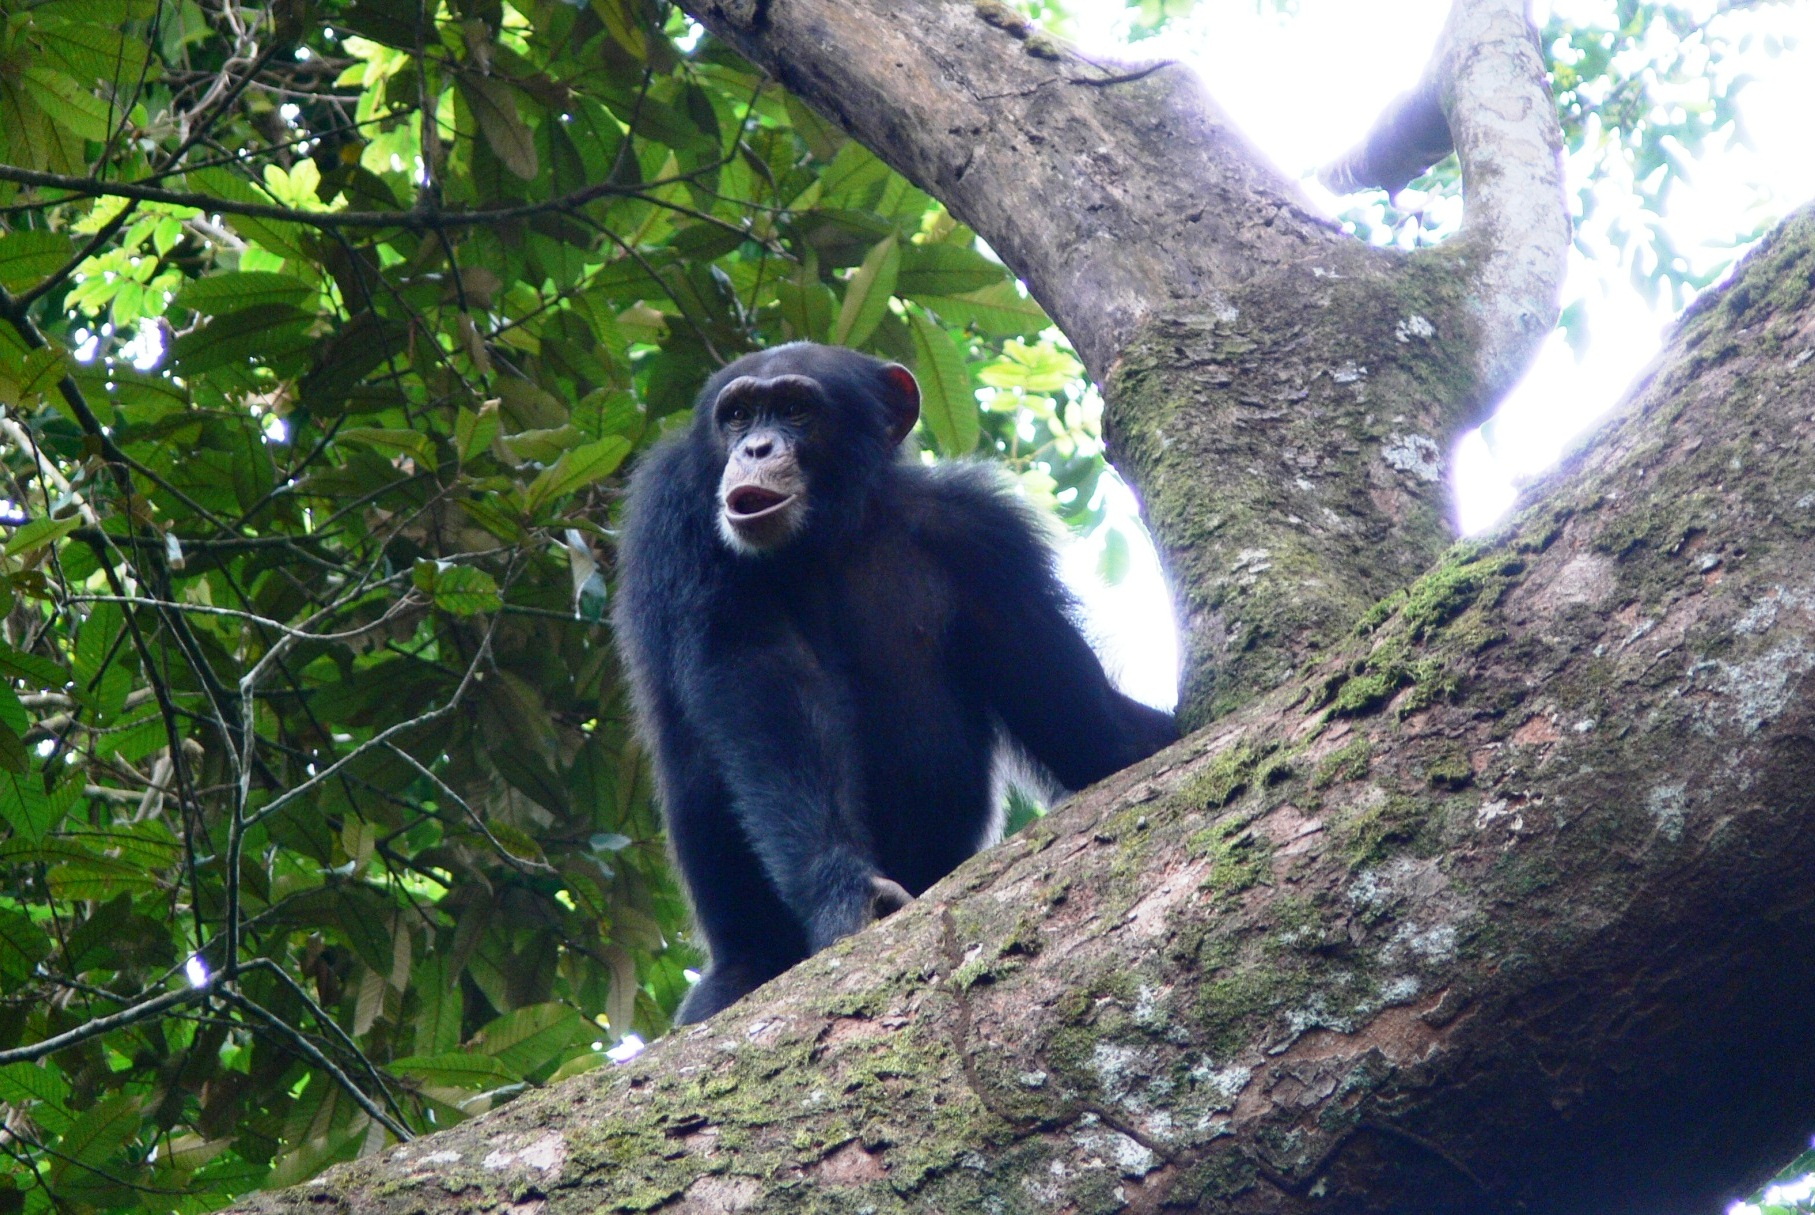 First evidence of crab fishing by chimpanzees